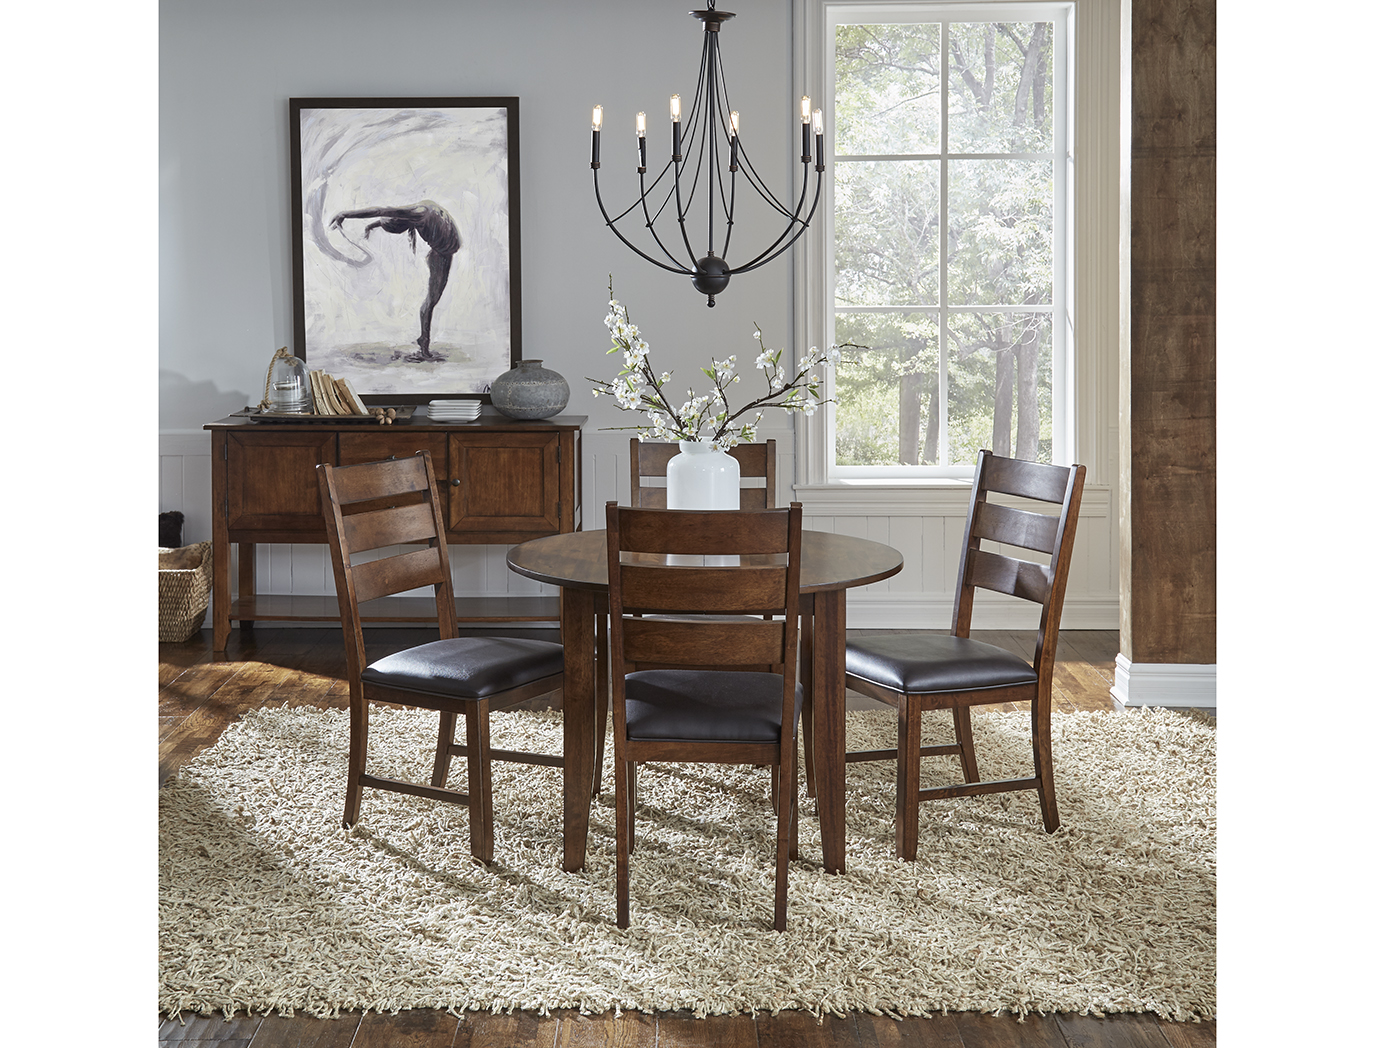 Mason 5-pc Dining Set W/Ladderback Chair